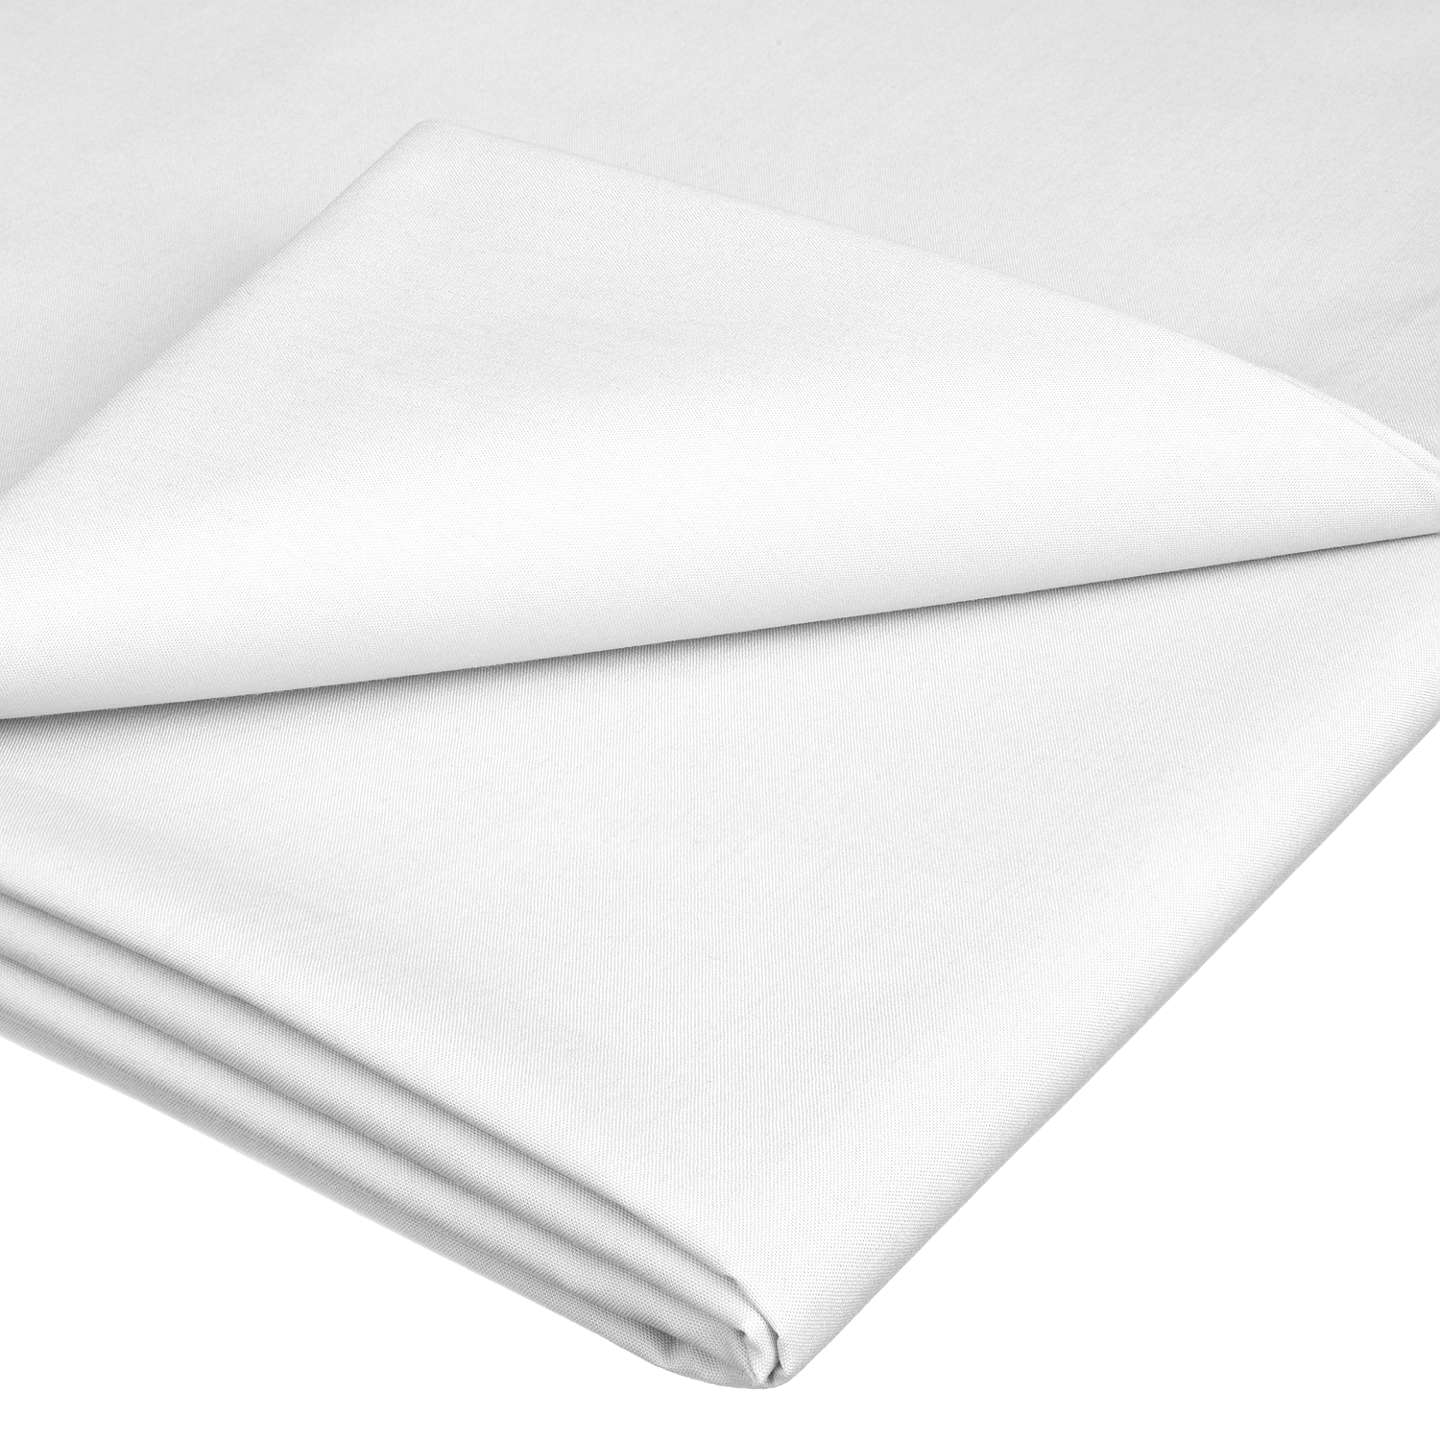 john lewis 1200 thread count cotton flat sheet white at. Black Bedroom Furniture Sets. Home Design Ideas